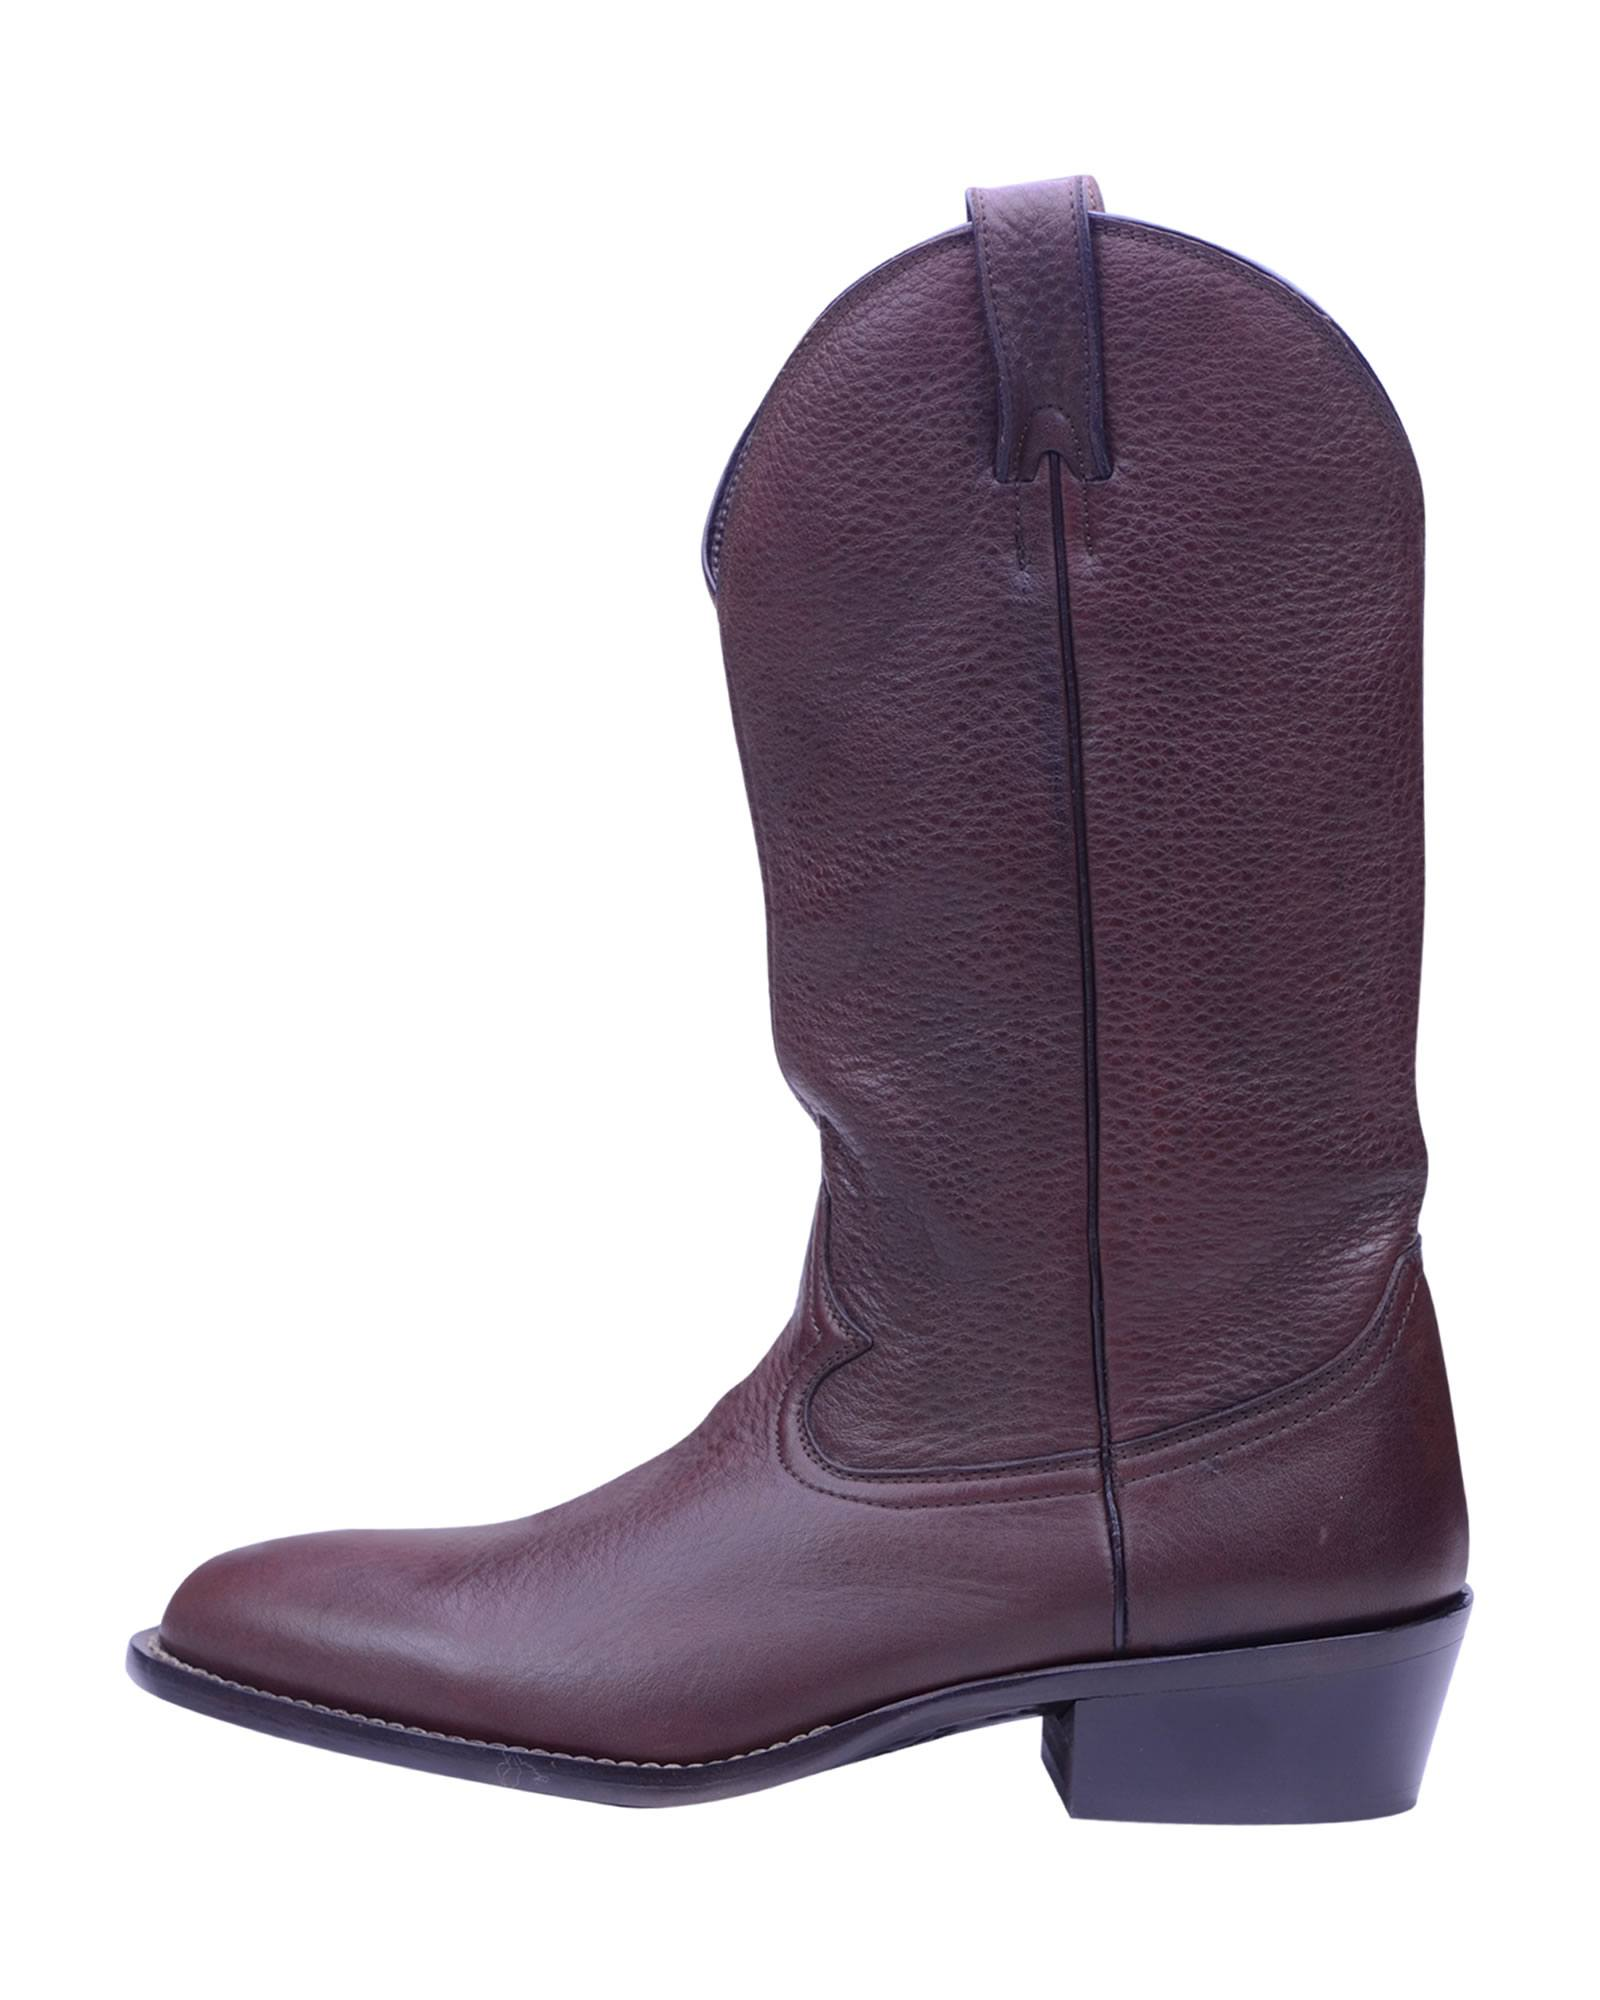 Angelo Galasso Signature Brown Leather Boots -1